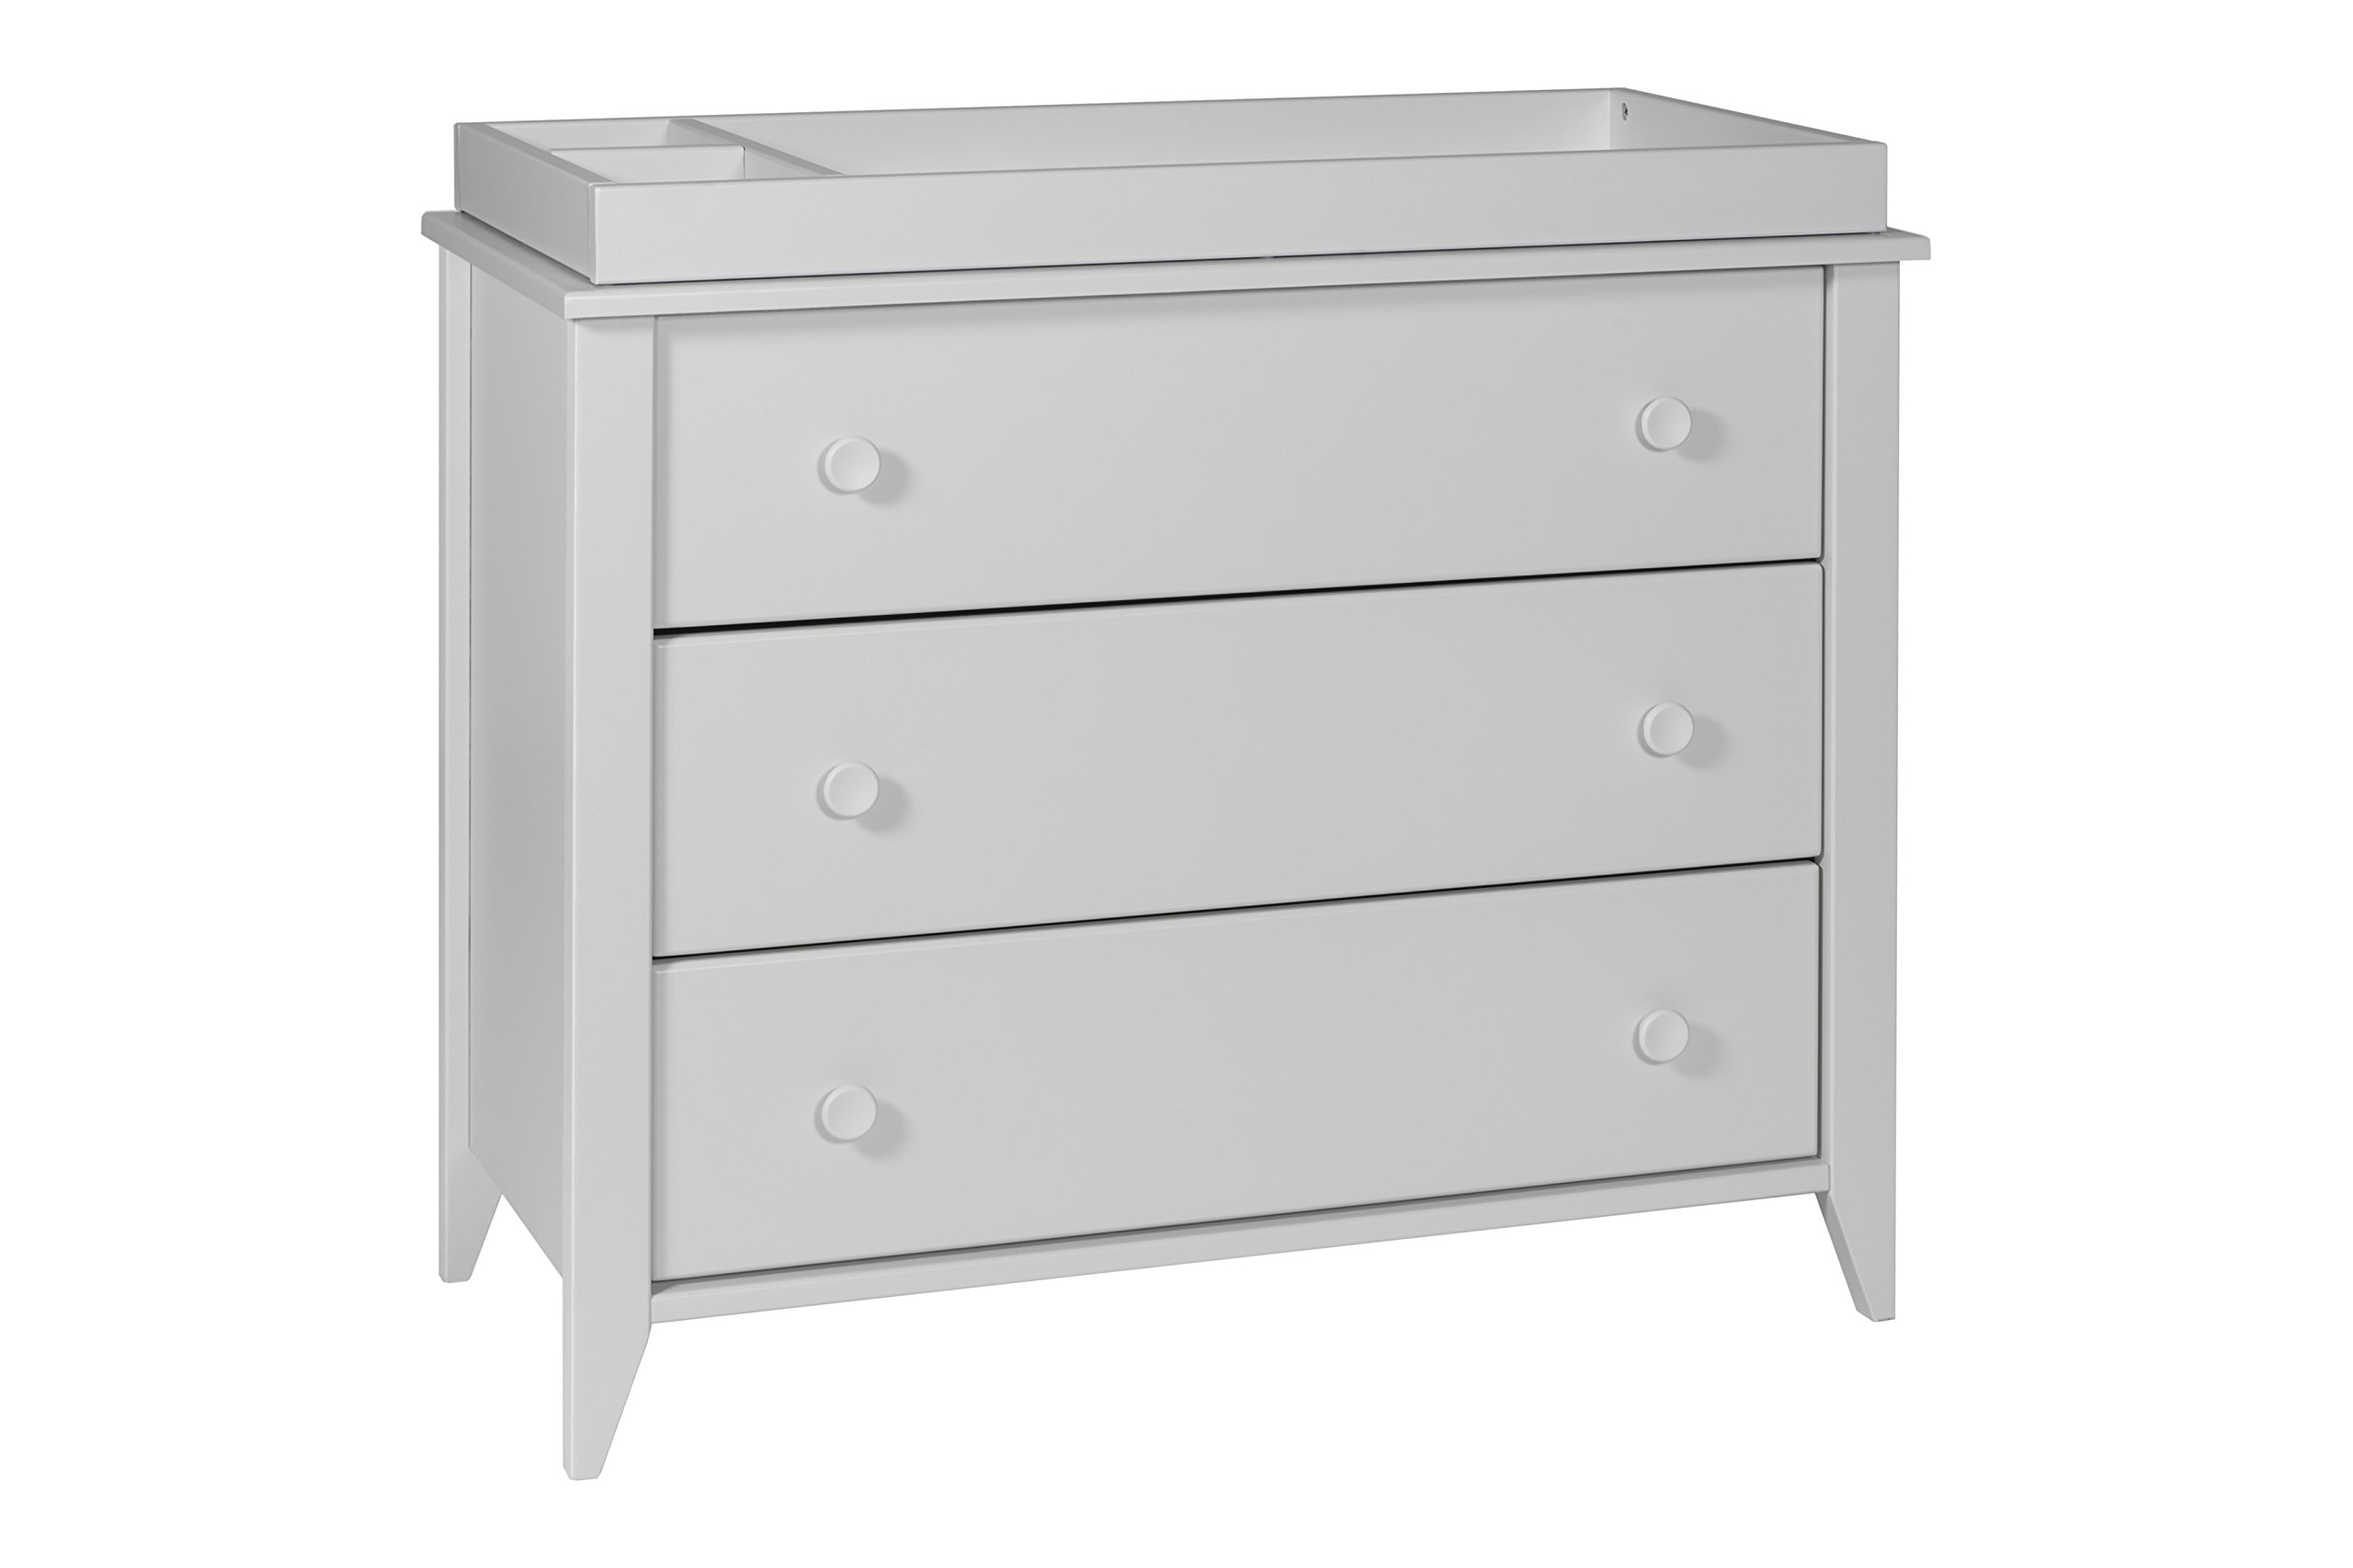 Babyletto Sprout 3-Drawer Changer Dresser with Removable Changing Tray, Light Grey